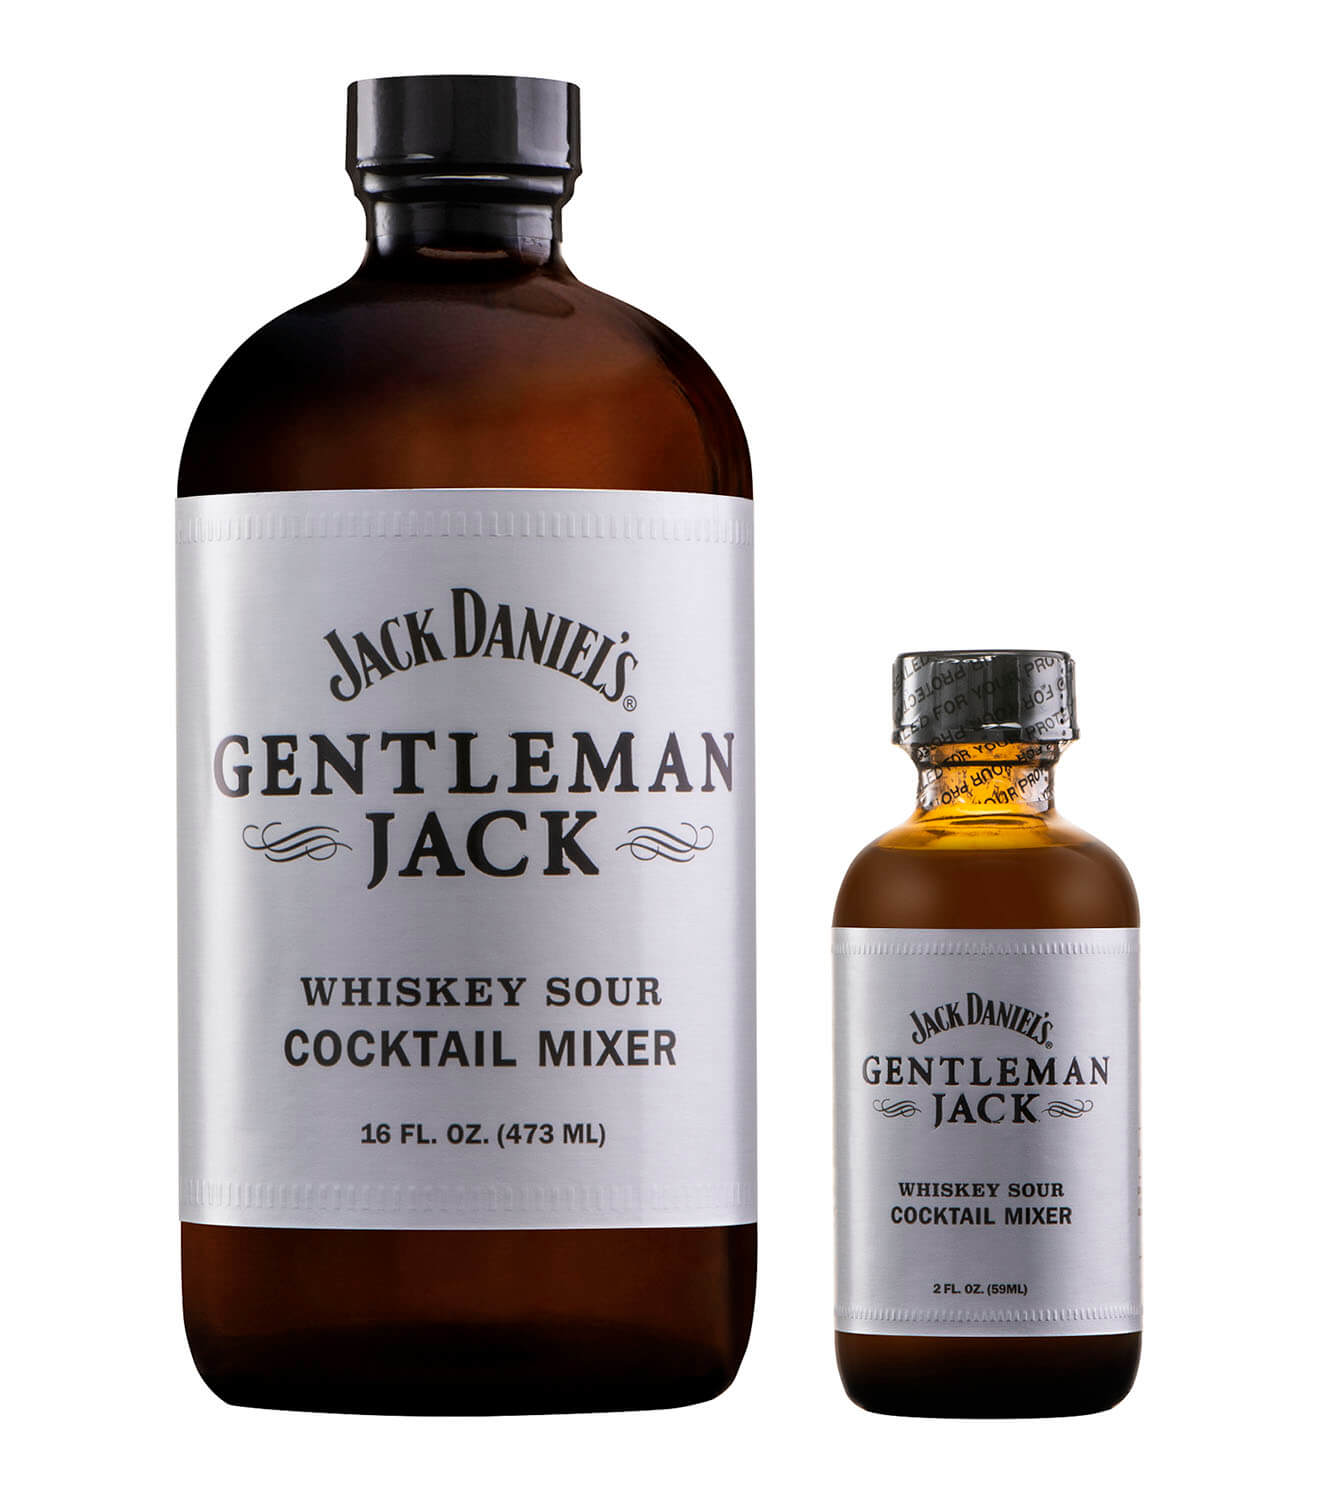 Gentleman Jack Cocktail Mixer